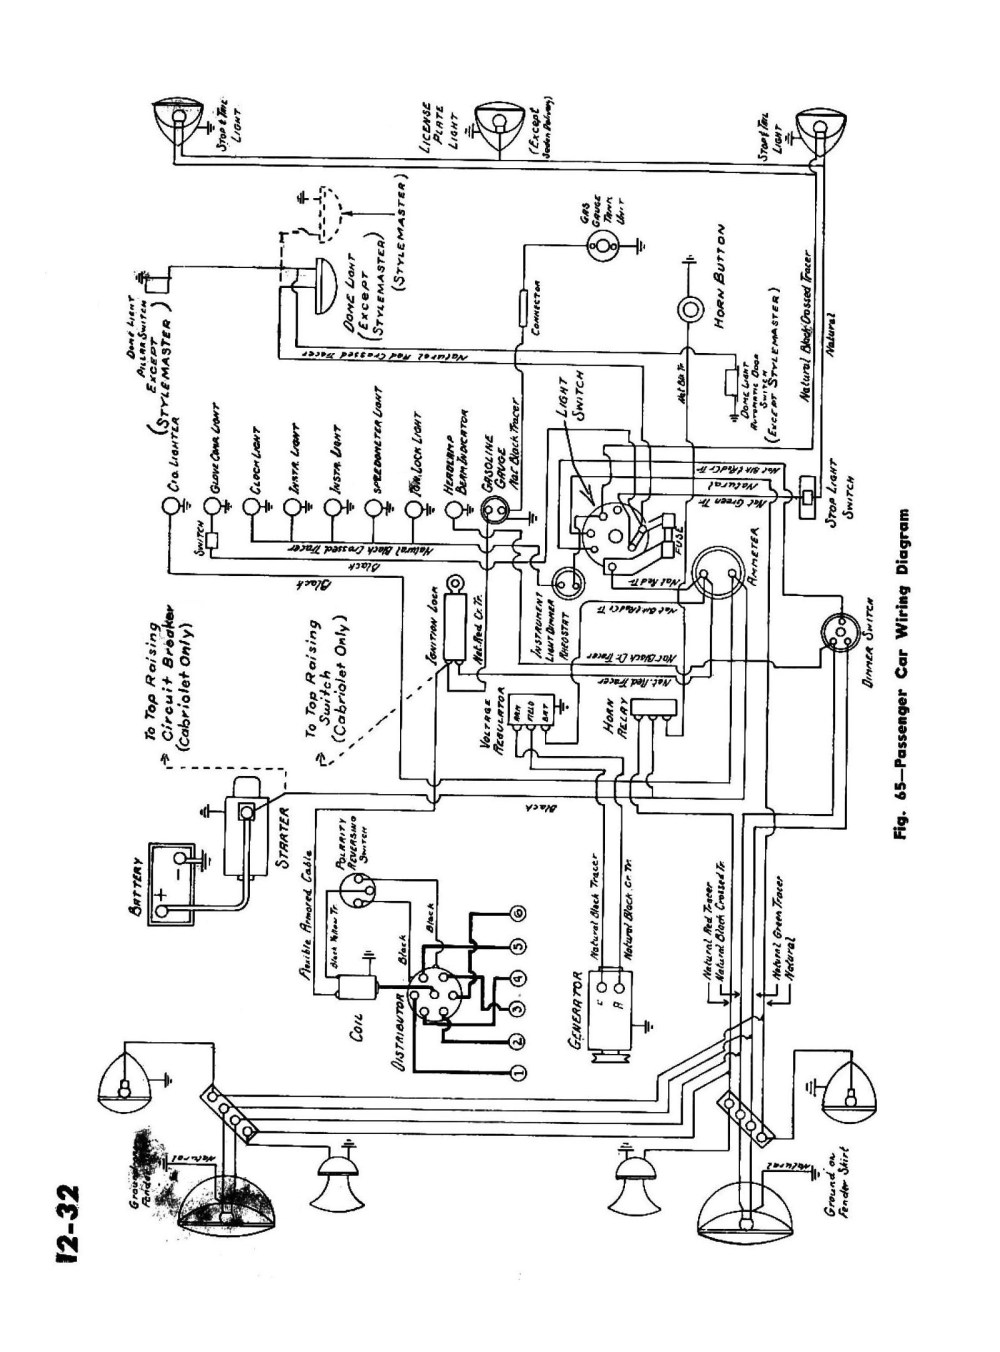 medium resolution of chevy wiring diagrams wiring a 400 amp service rover 45 air con wiring diagram